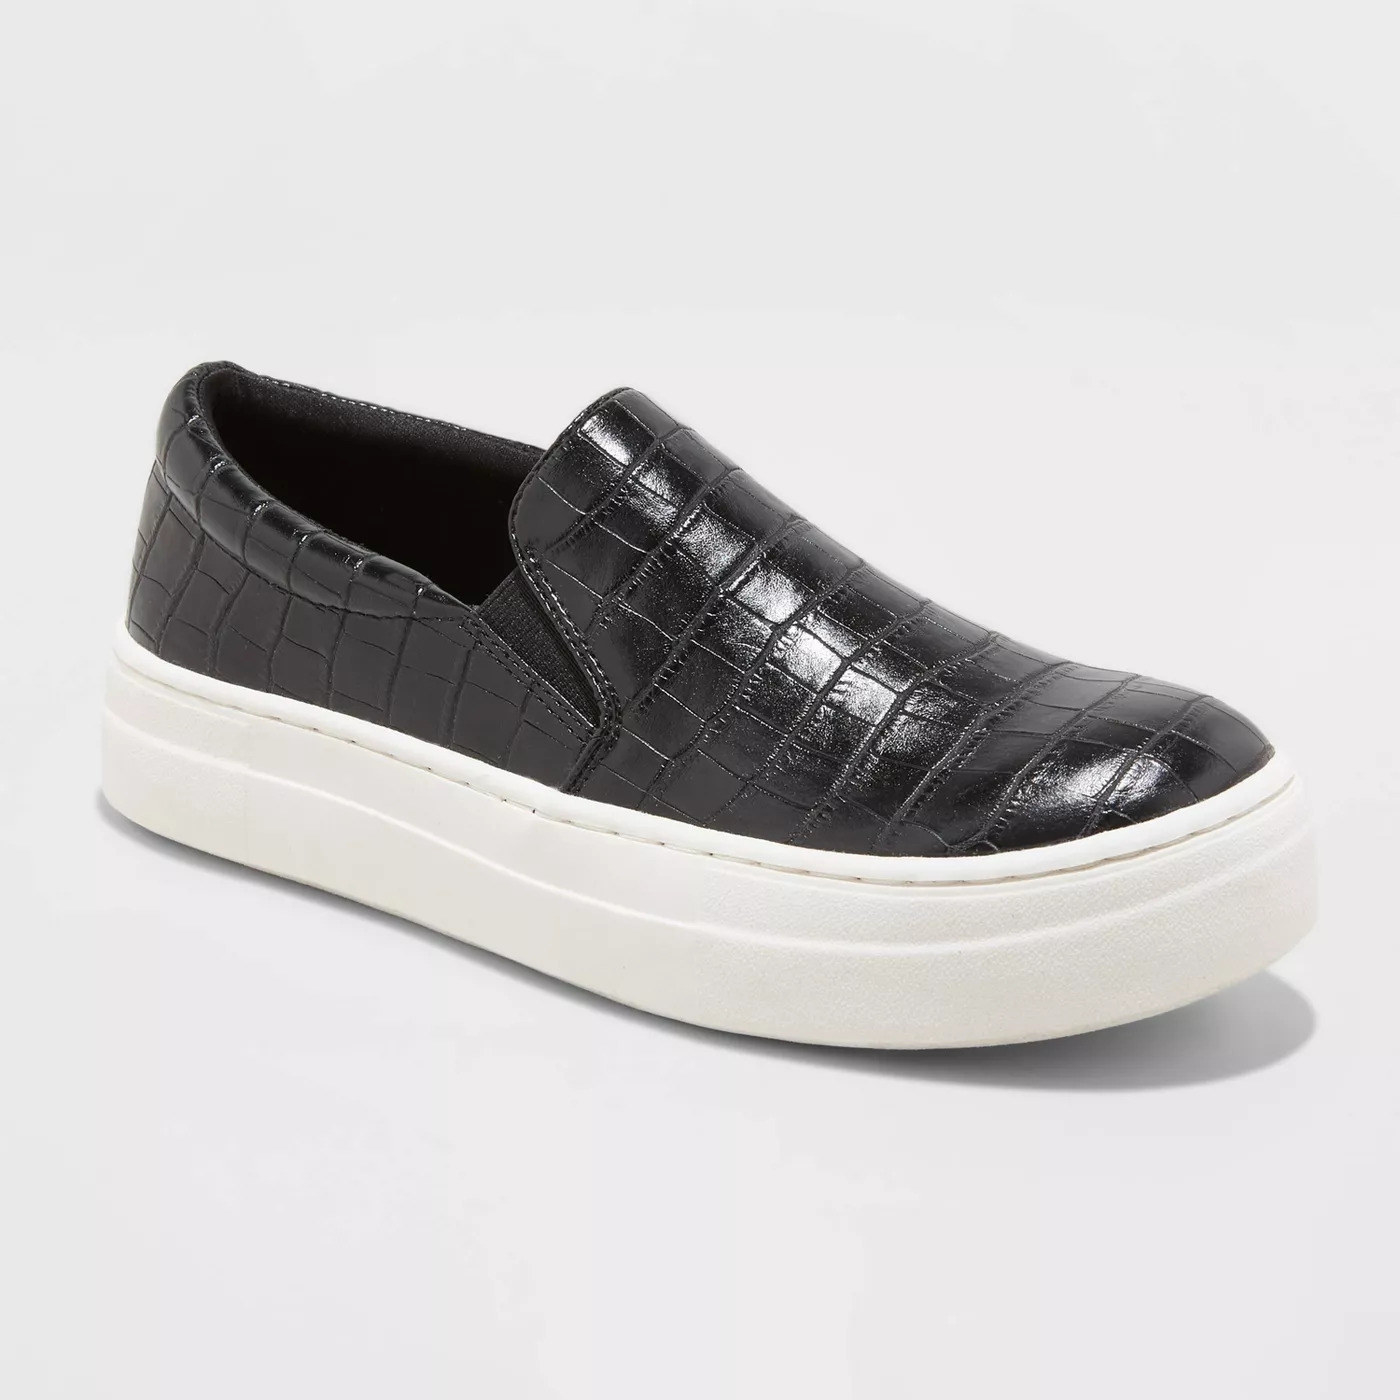 a black faux-snakeskin upper and a white platform rubber sole